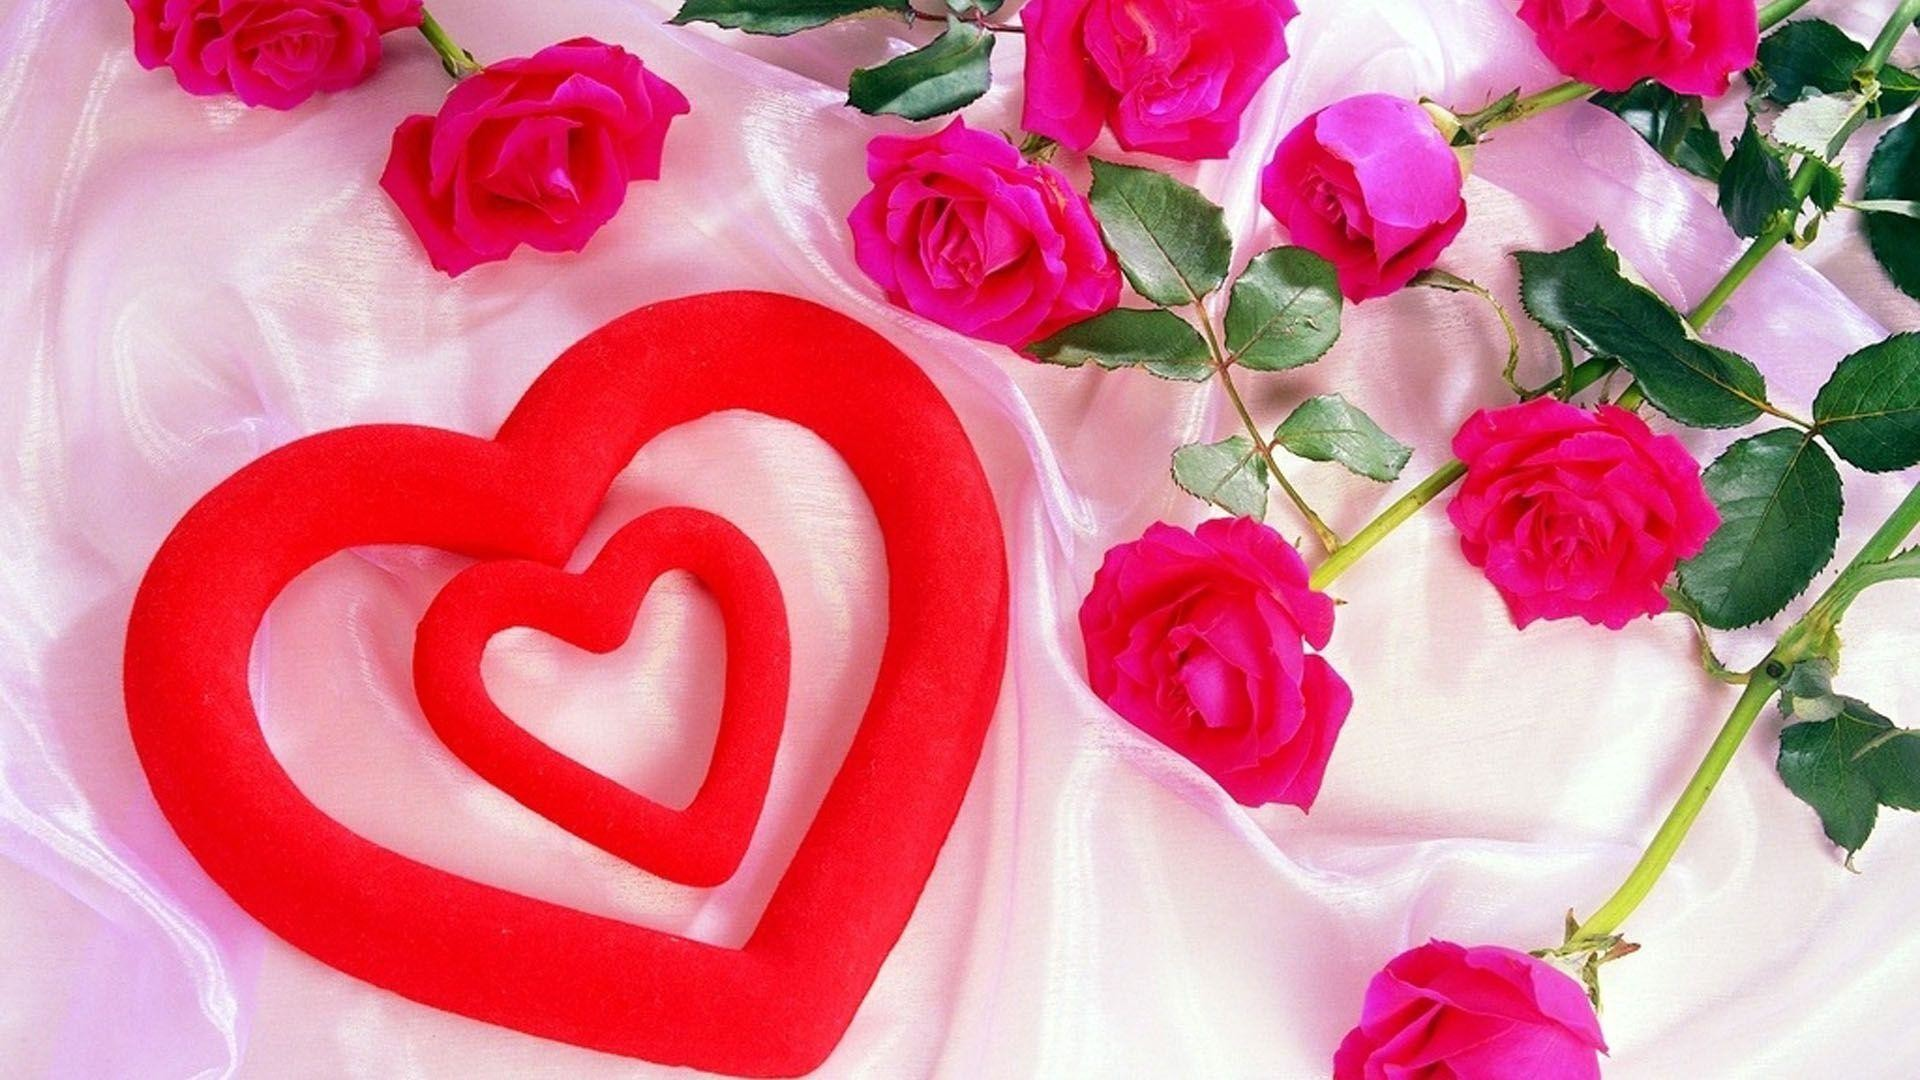 Love Red Rose Heart Wallpapers | Wallpapers 2014 | Wallpapers 2014